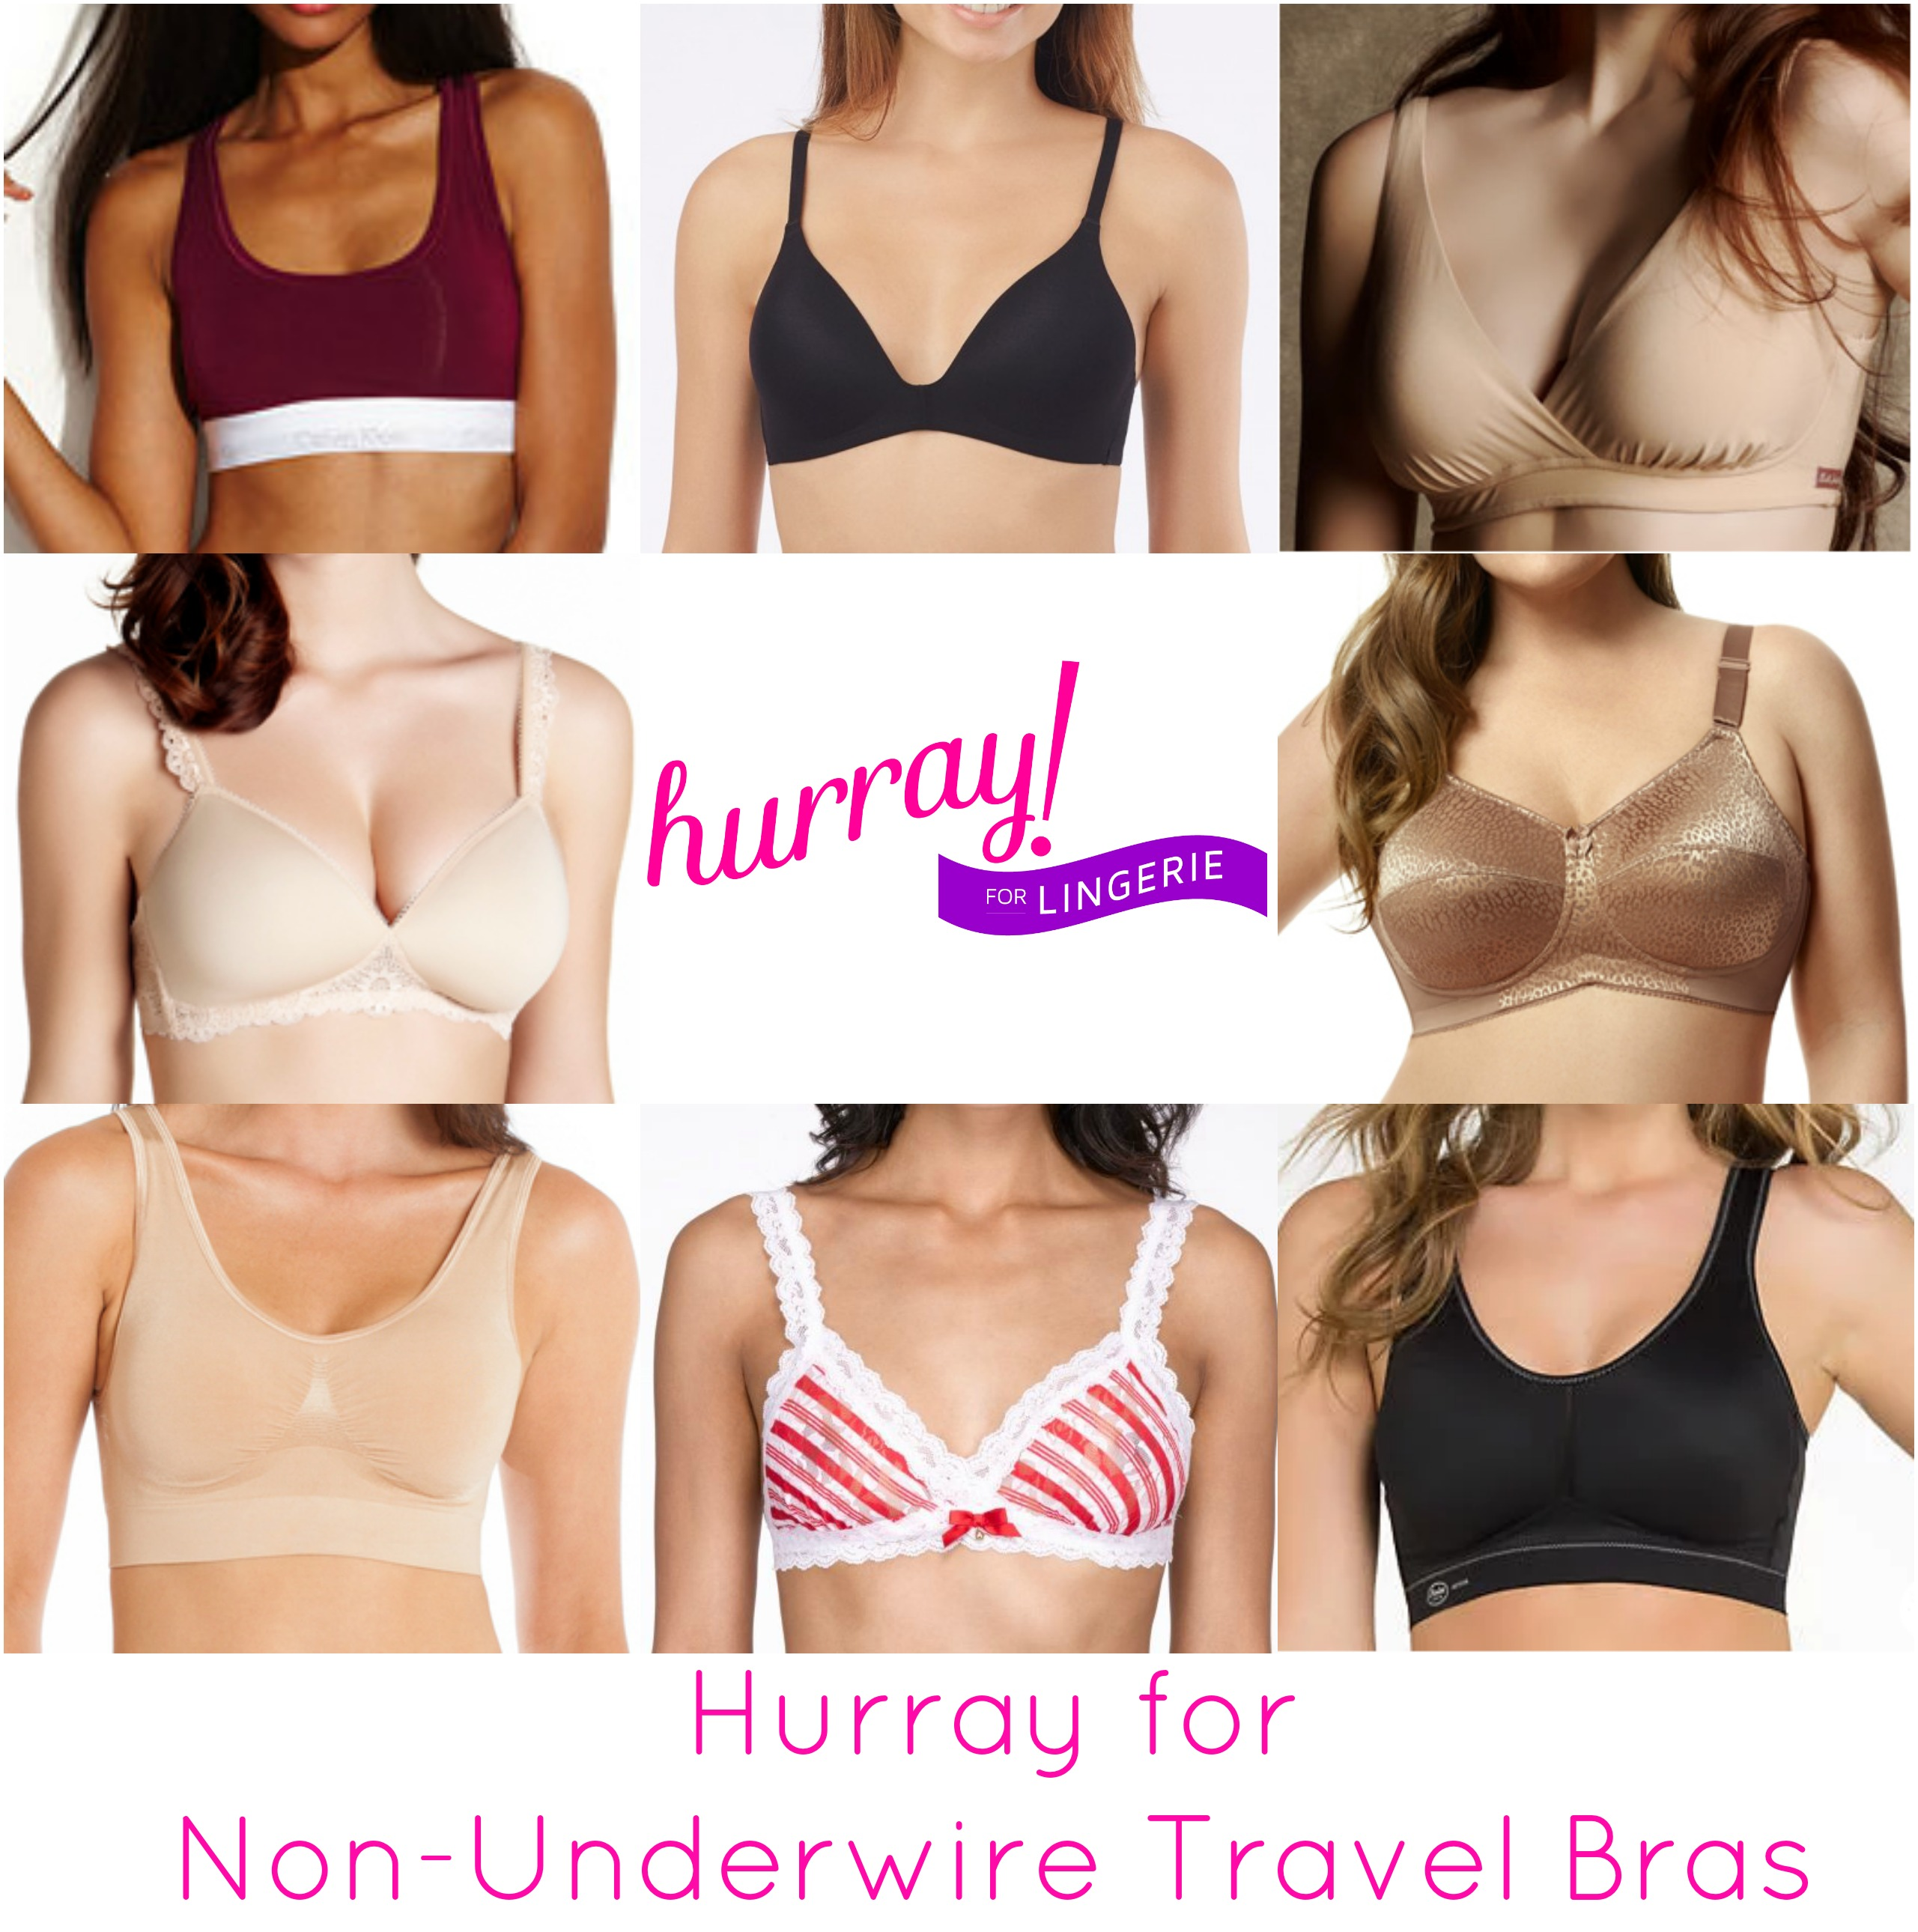 Hurray for non underwire travel bras by Hurray Kimmay